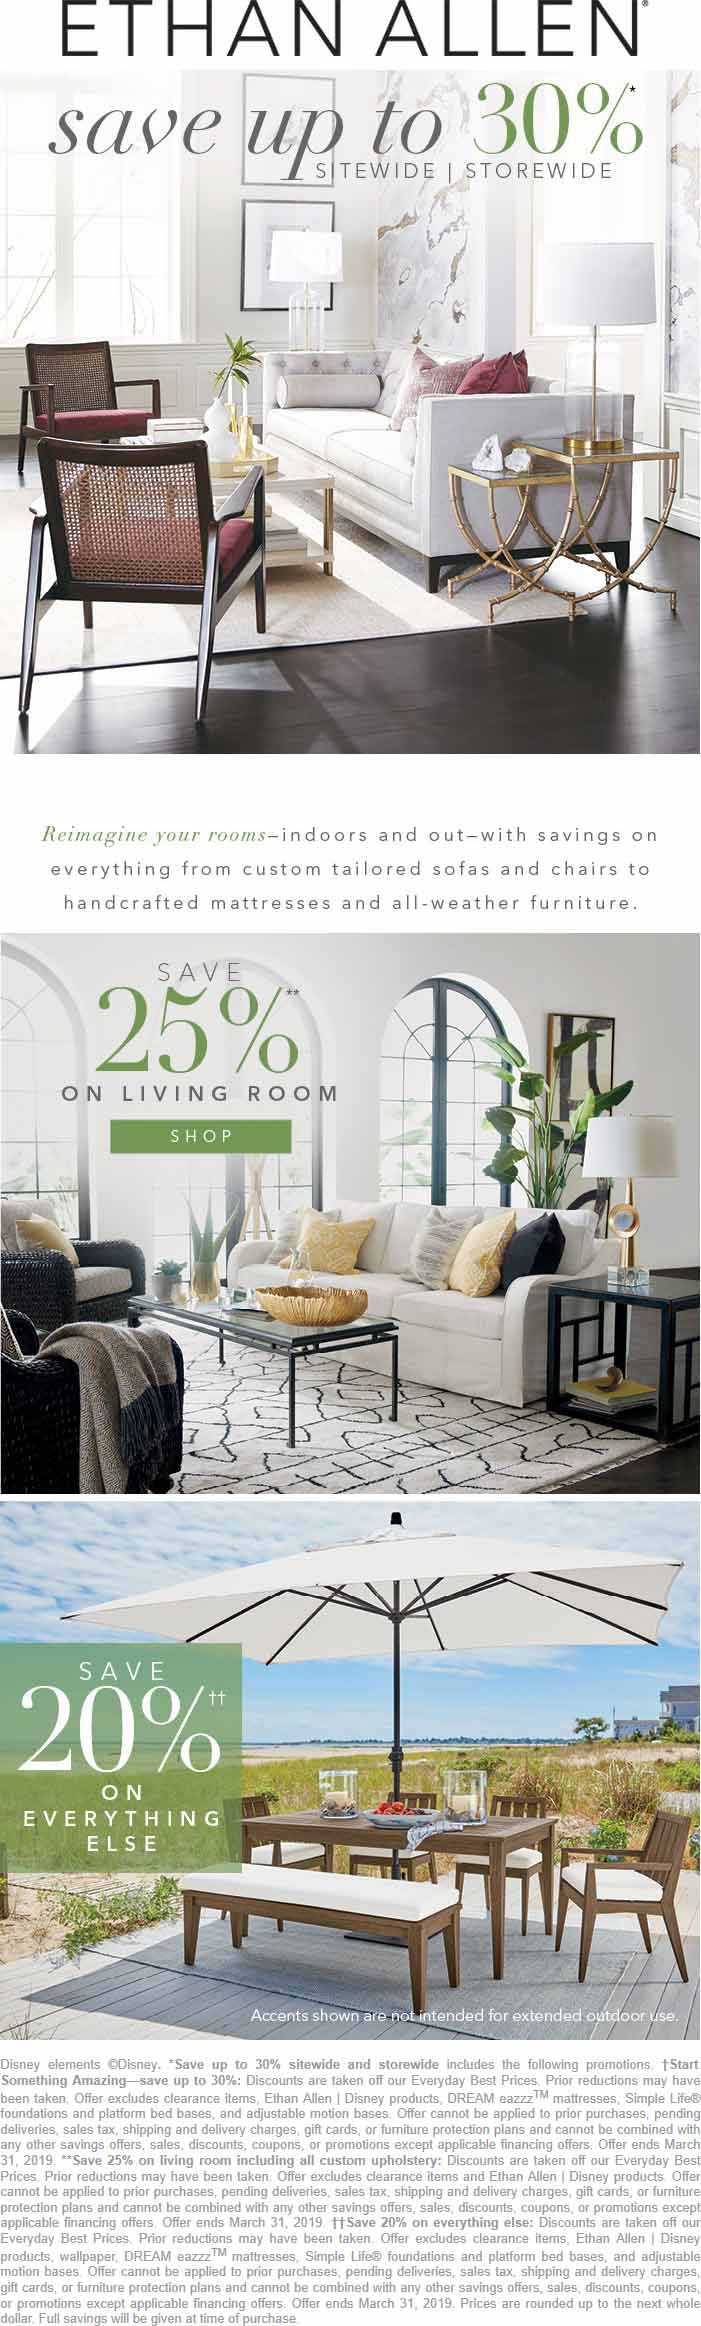 Ethan Allen coupons & promo code for [April 2020]